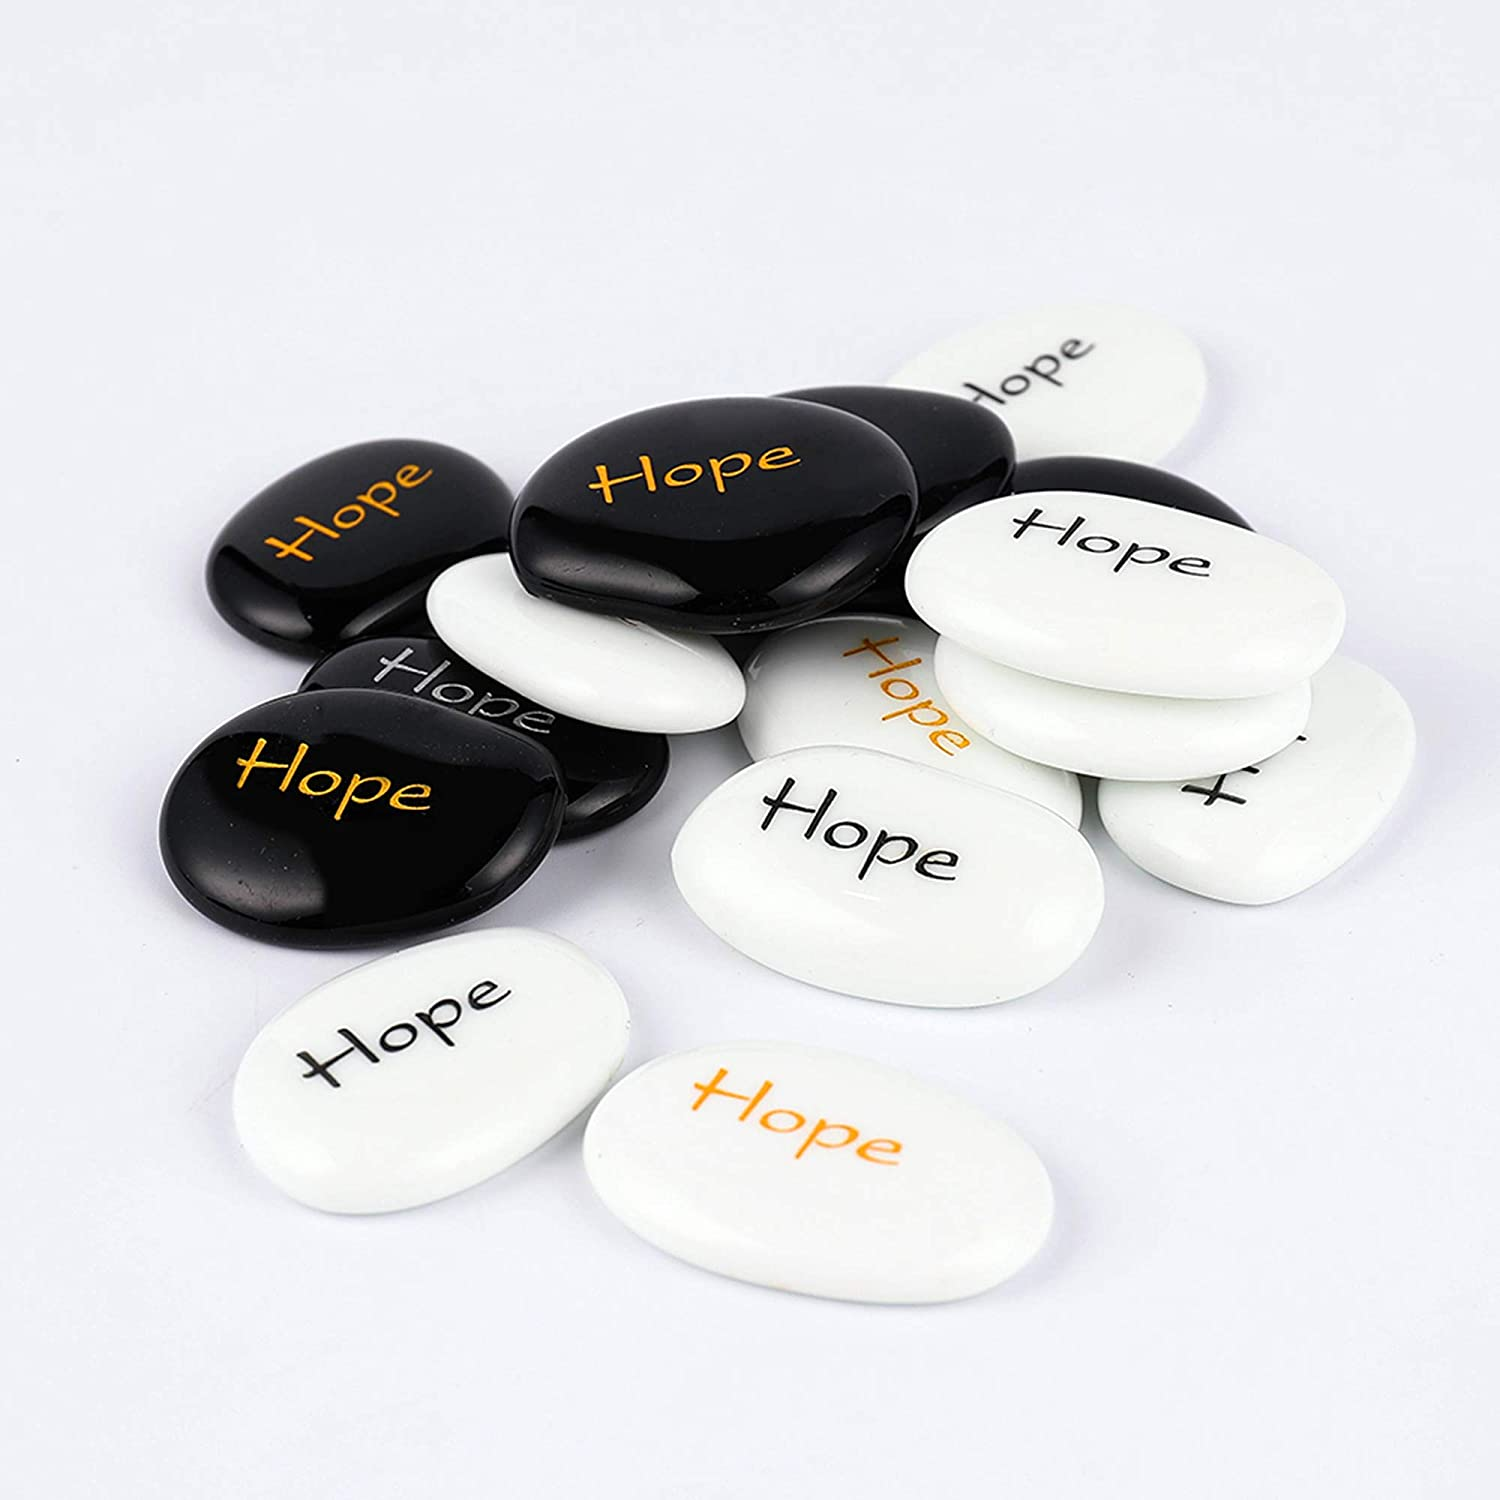 "ROCKIMPACT 50PCS Hope Engraved Inspirational Glass Stones Prayer Stones Gift Pebble Marble Gems Table Scatter Aquarium Decor Vase Beads Healing Stone Encouragement Wholesale Bulk Hope Rocks, 2"" ea"